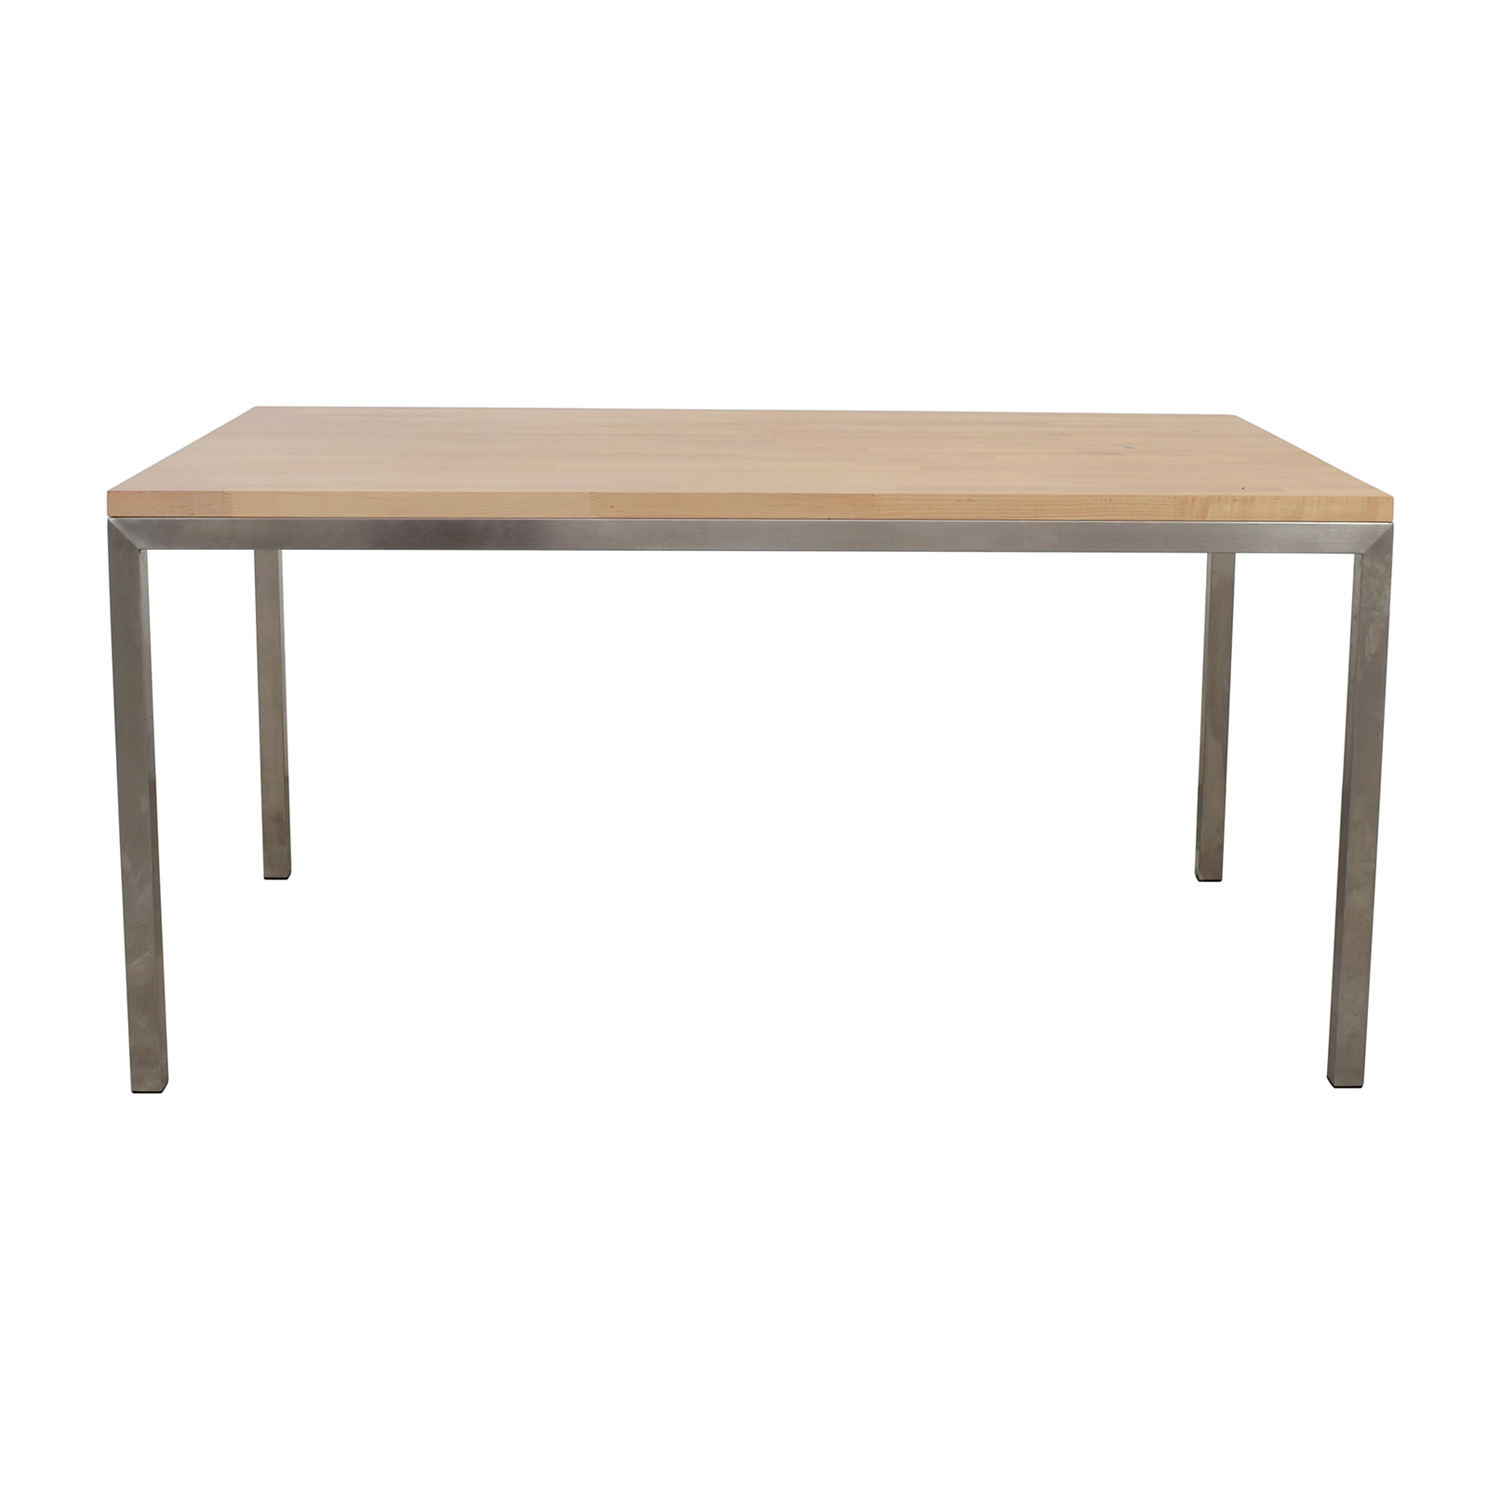 Room & Board Room & Board Portica Wood and Chrome Table price